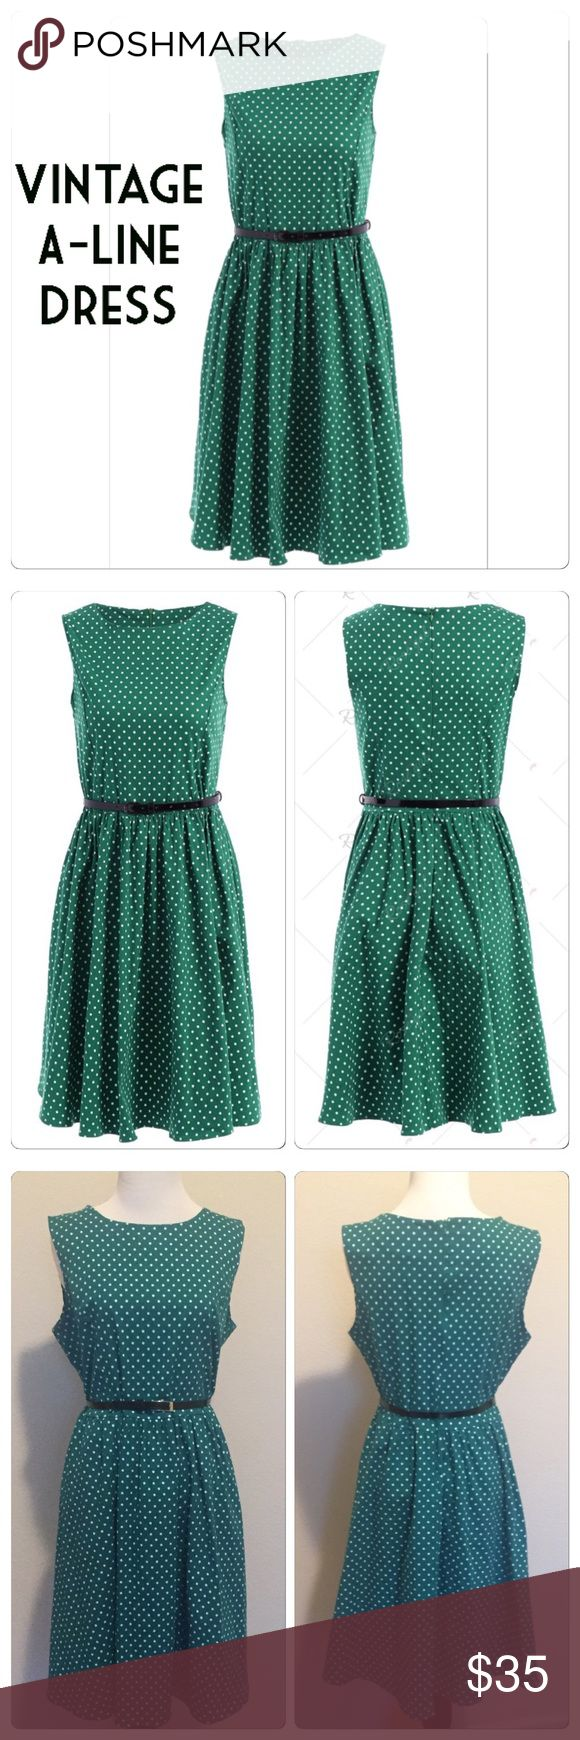 Vintage A-Line Polka Dot Dress Beautiful like new polka dot, vintage style sleeveless green dress. Worn for an hour! A-line, knee-length, round collar and polyester with stretch. Super cute for any occasion. Dresses Asymmetrical